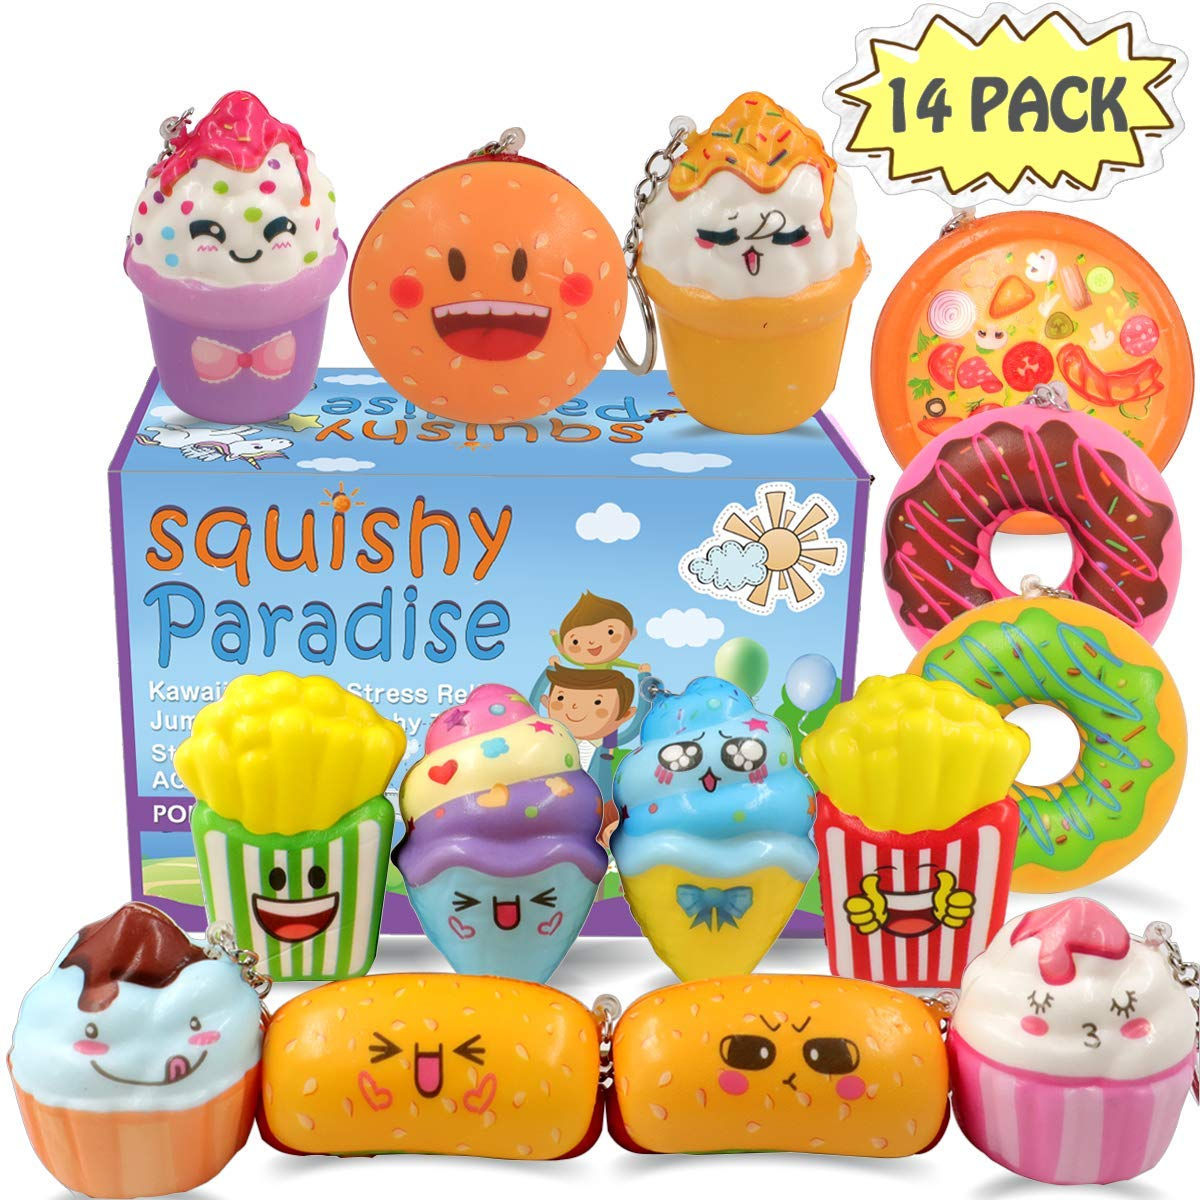 POKONBOY Squishies Donut Squishy Toys, 14 Pack Food Squishies Kawaii Cute Donuts & Ice Cream & Pizza Slow Rising Creamy Scent Stress Relif Squishies Pack Party Favors Decorative with Key Chain by POKONBOY